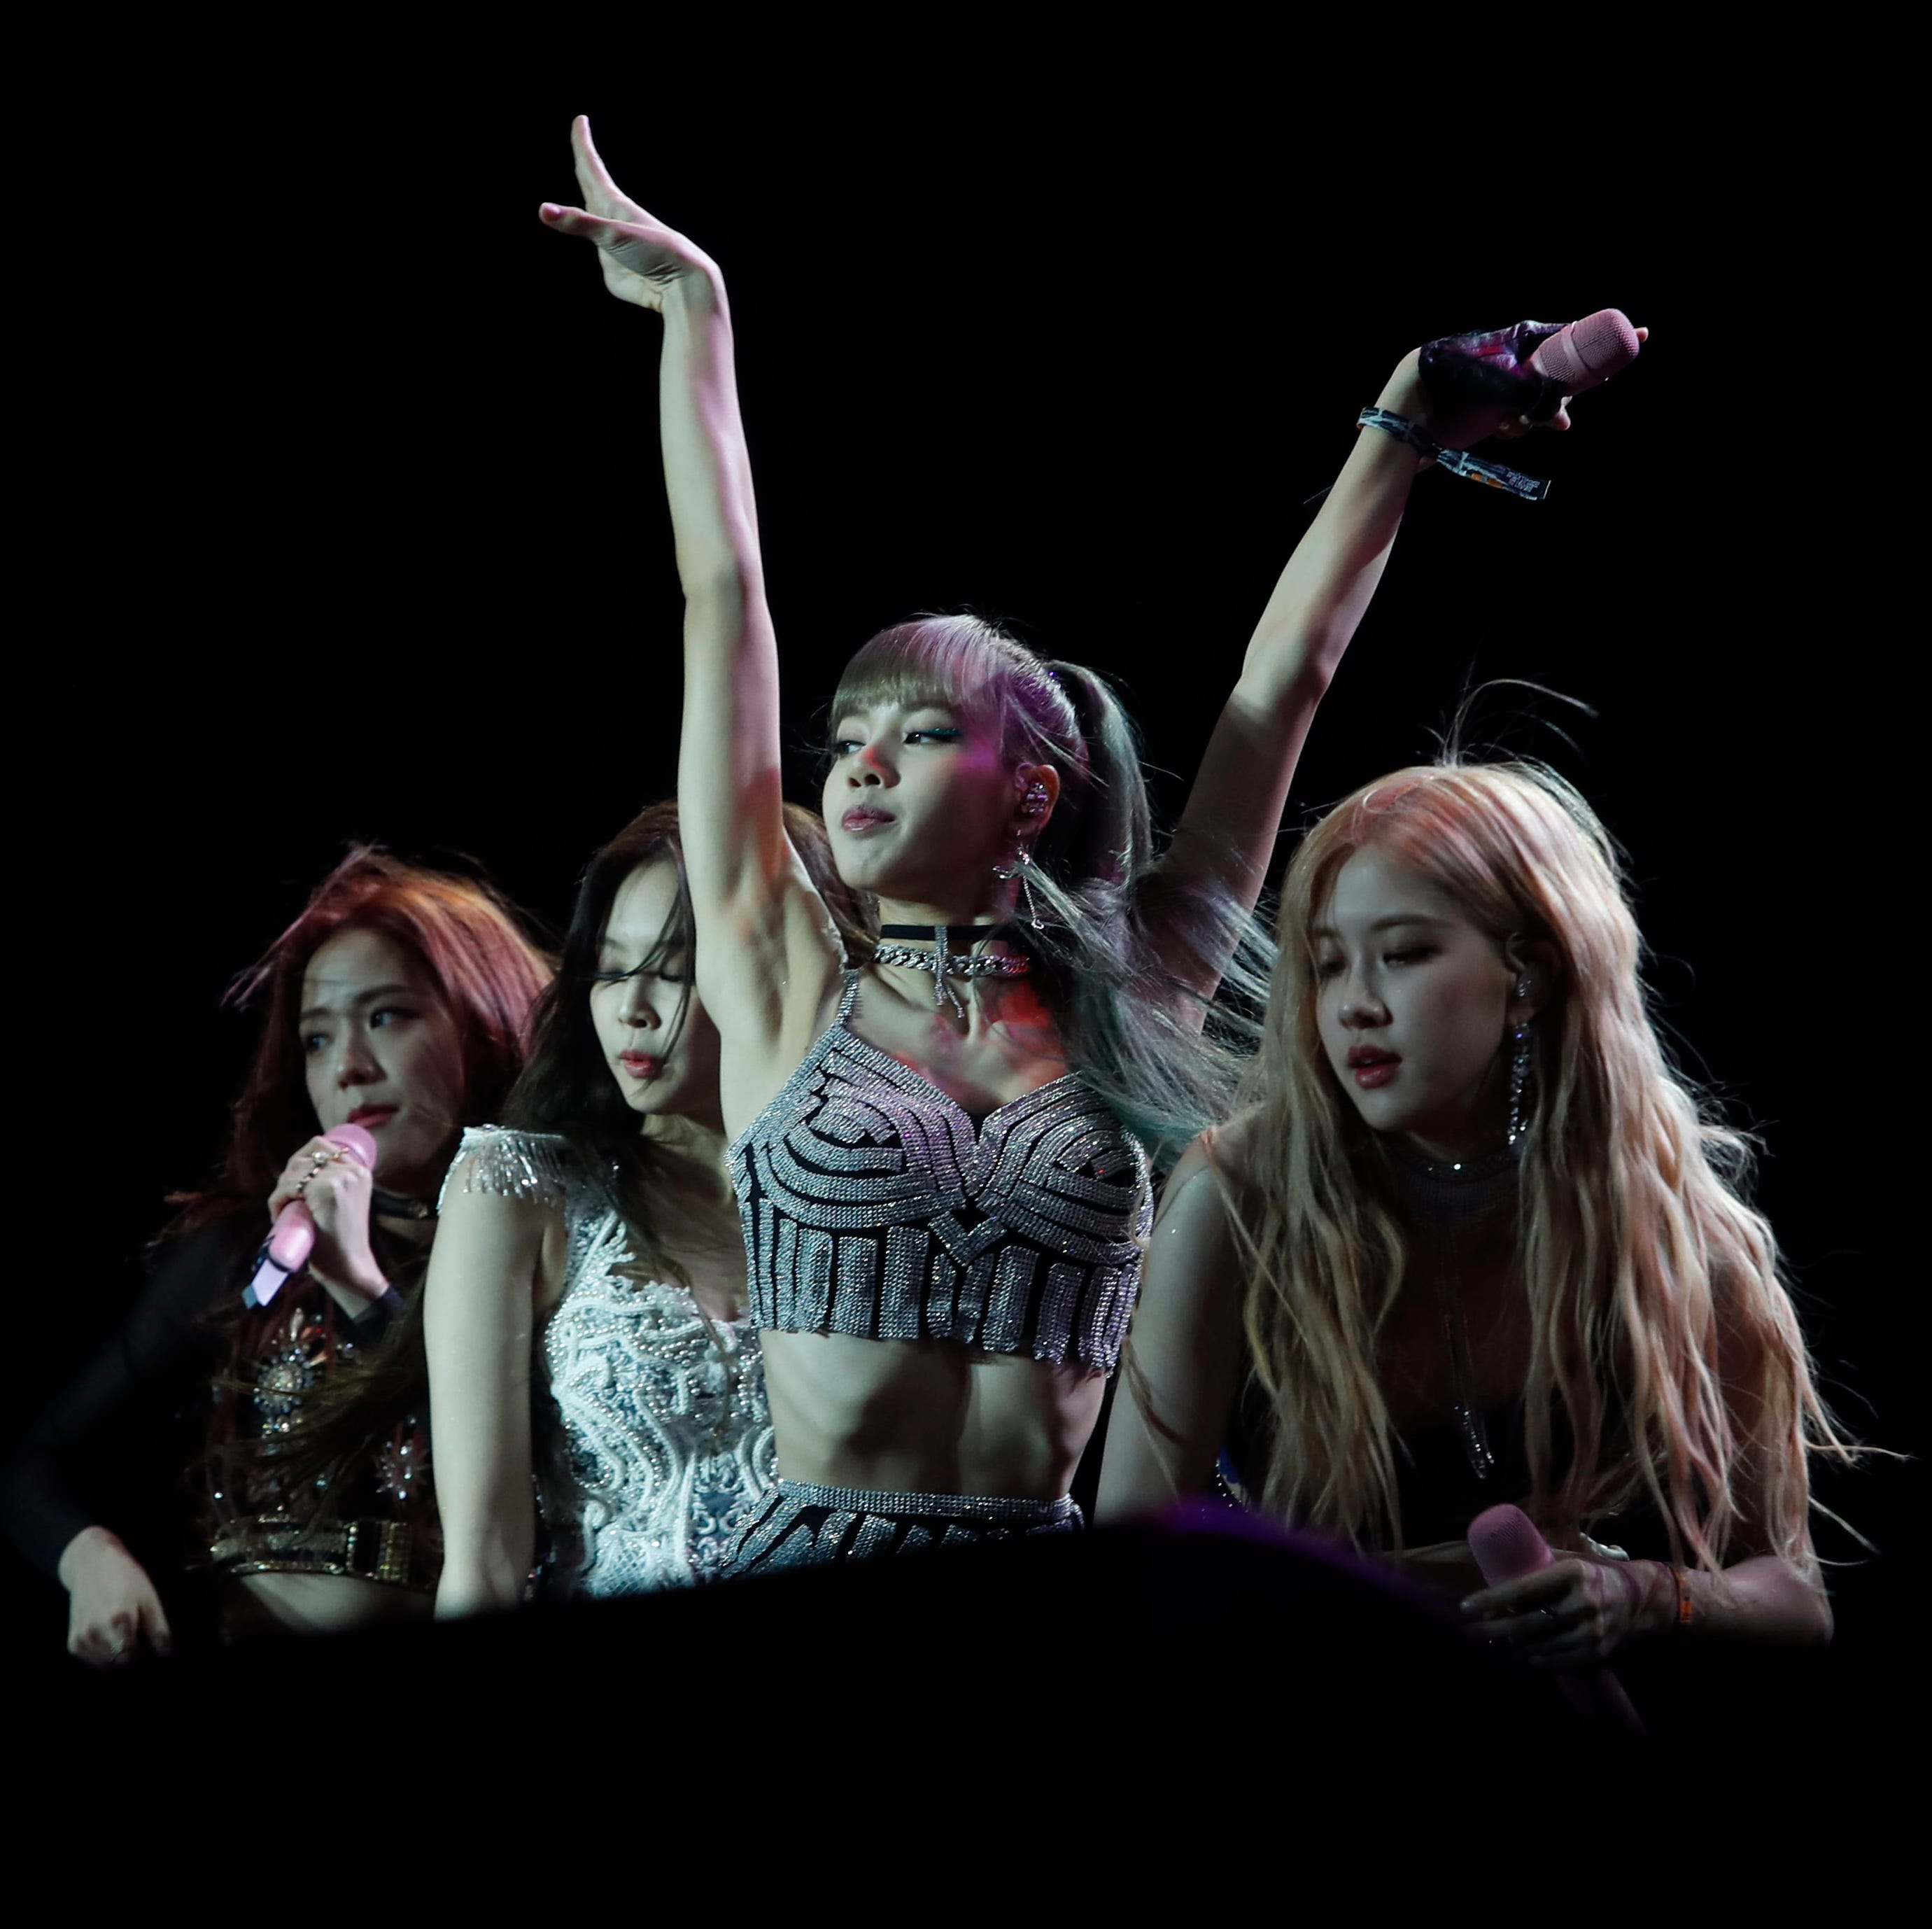 BLACKPINK makes Coachella history as festival's first all-girl K-pop group